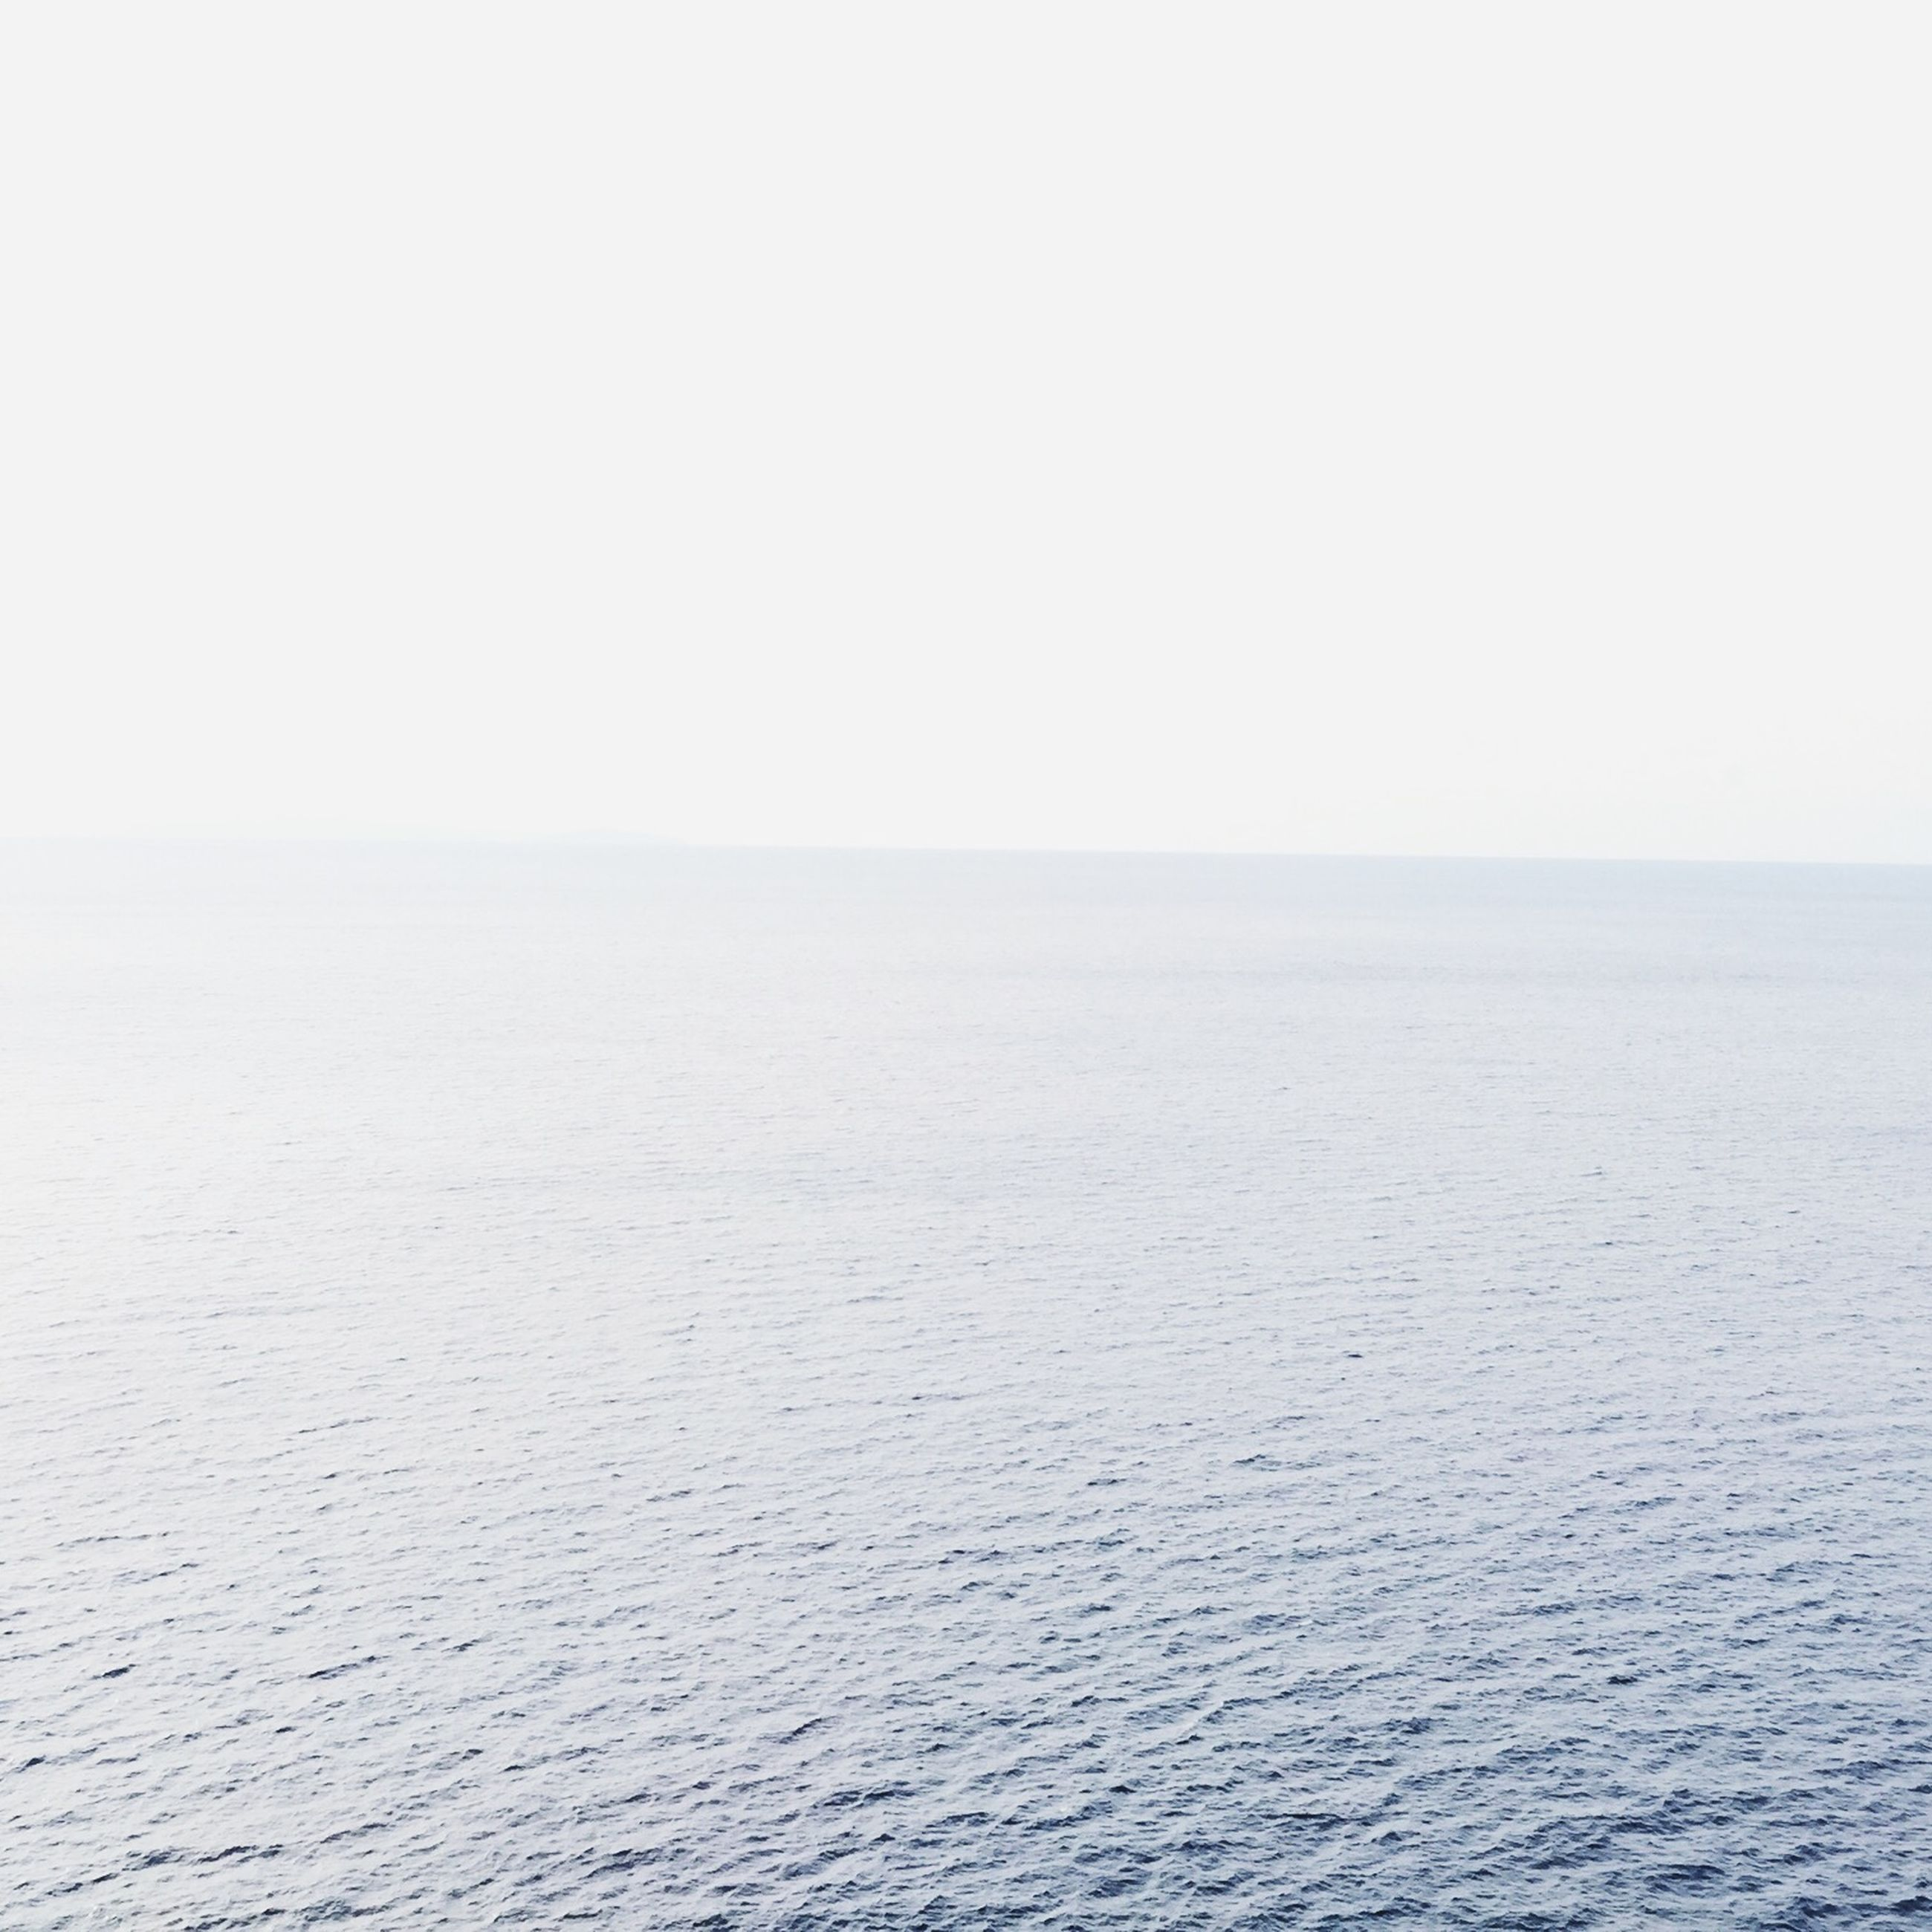 sea, water, waterfront, tranquil scene, tranquility, copy space, horizon over water, scenics, beauty in nature, rippled, nature, clear sky, seascape, idyllic, sky, no people, day, outdoors, remote, calm